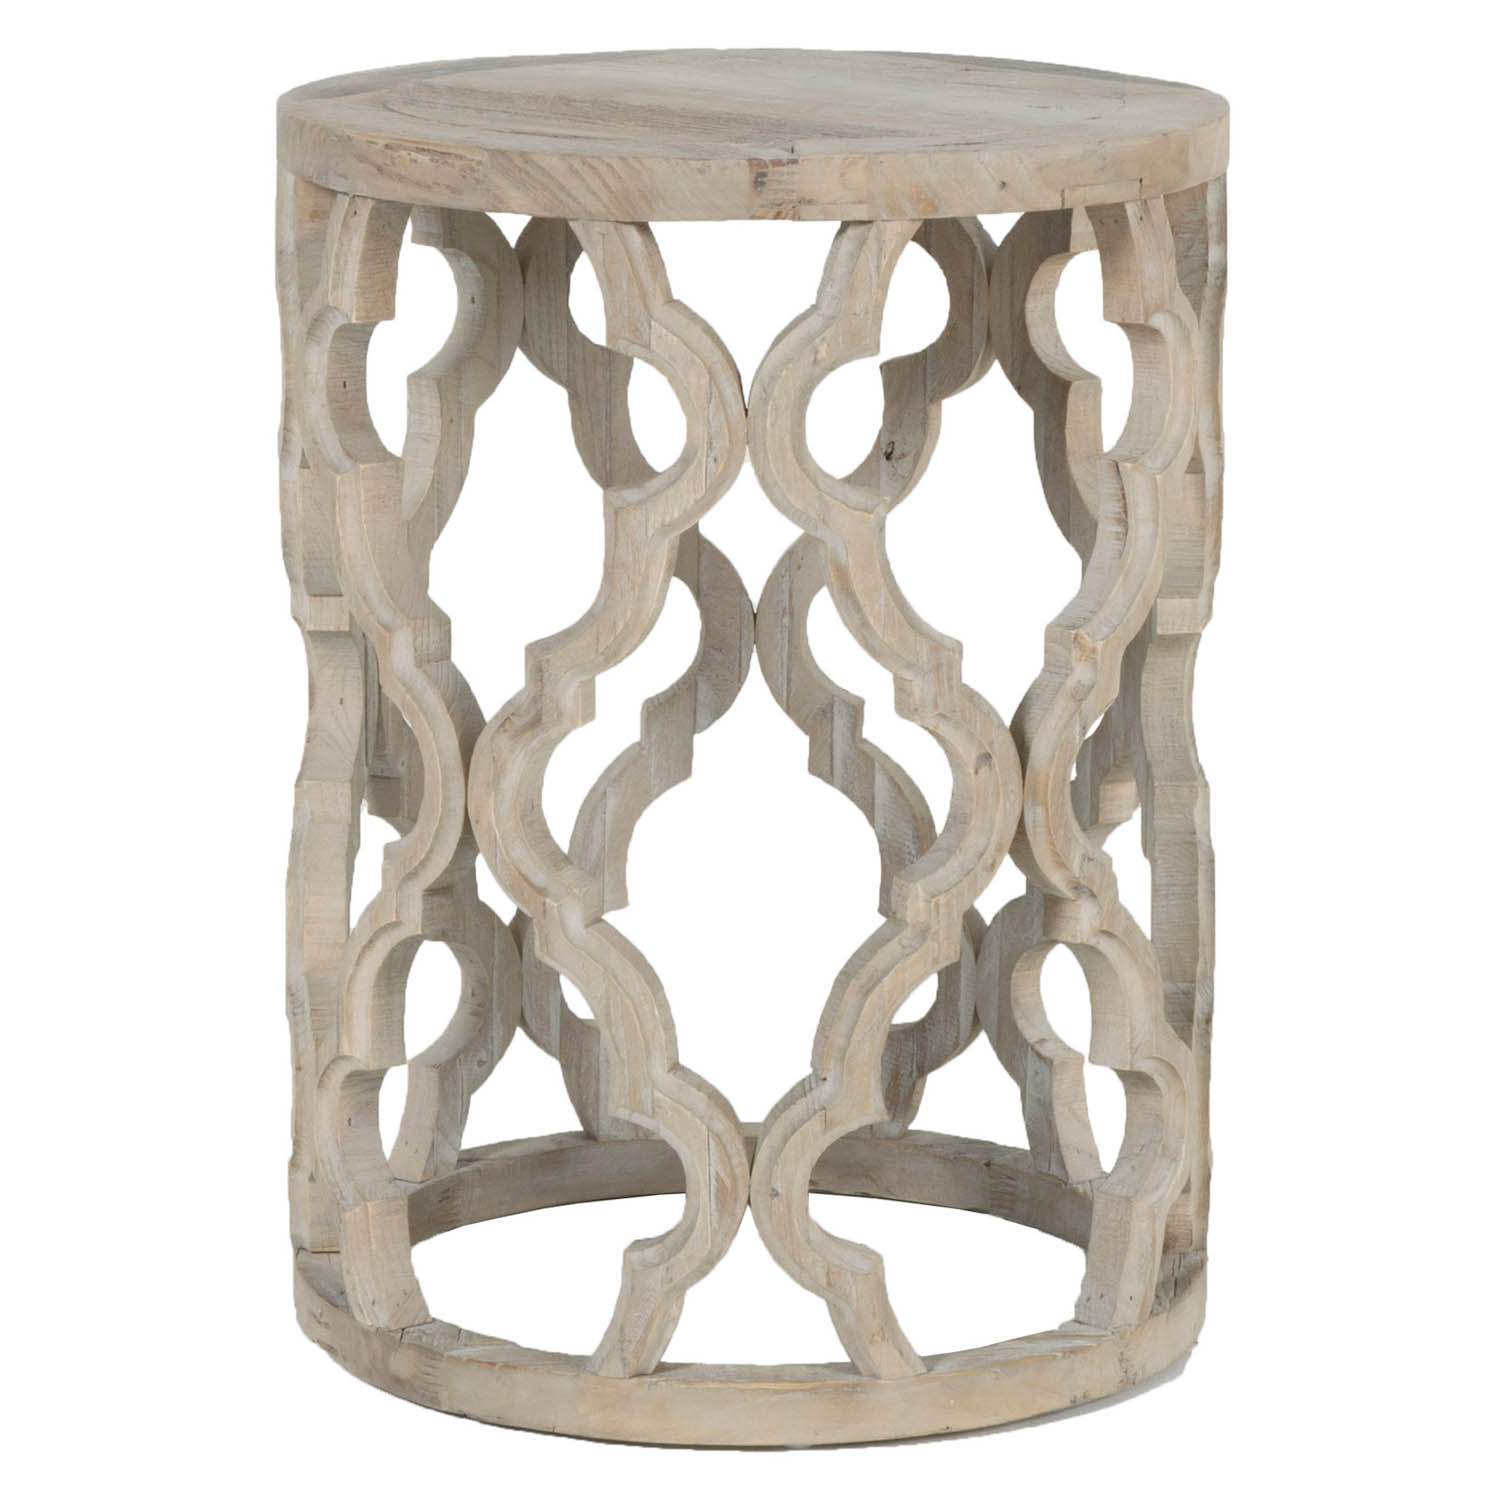 maple bedside table the super cool off white distressed end tables accent clover smoke gray argos chair covers tree dog kennel plans old wooden trunks and chests brown outdoor